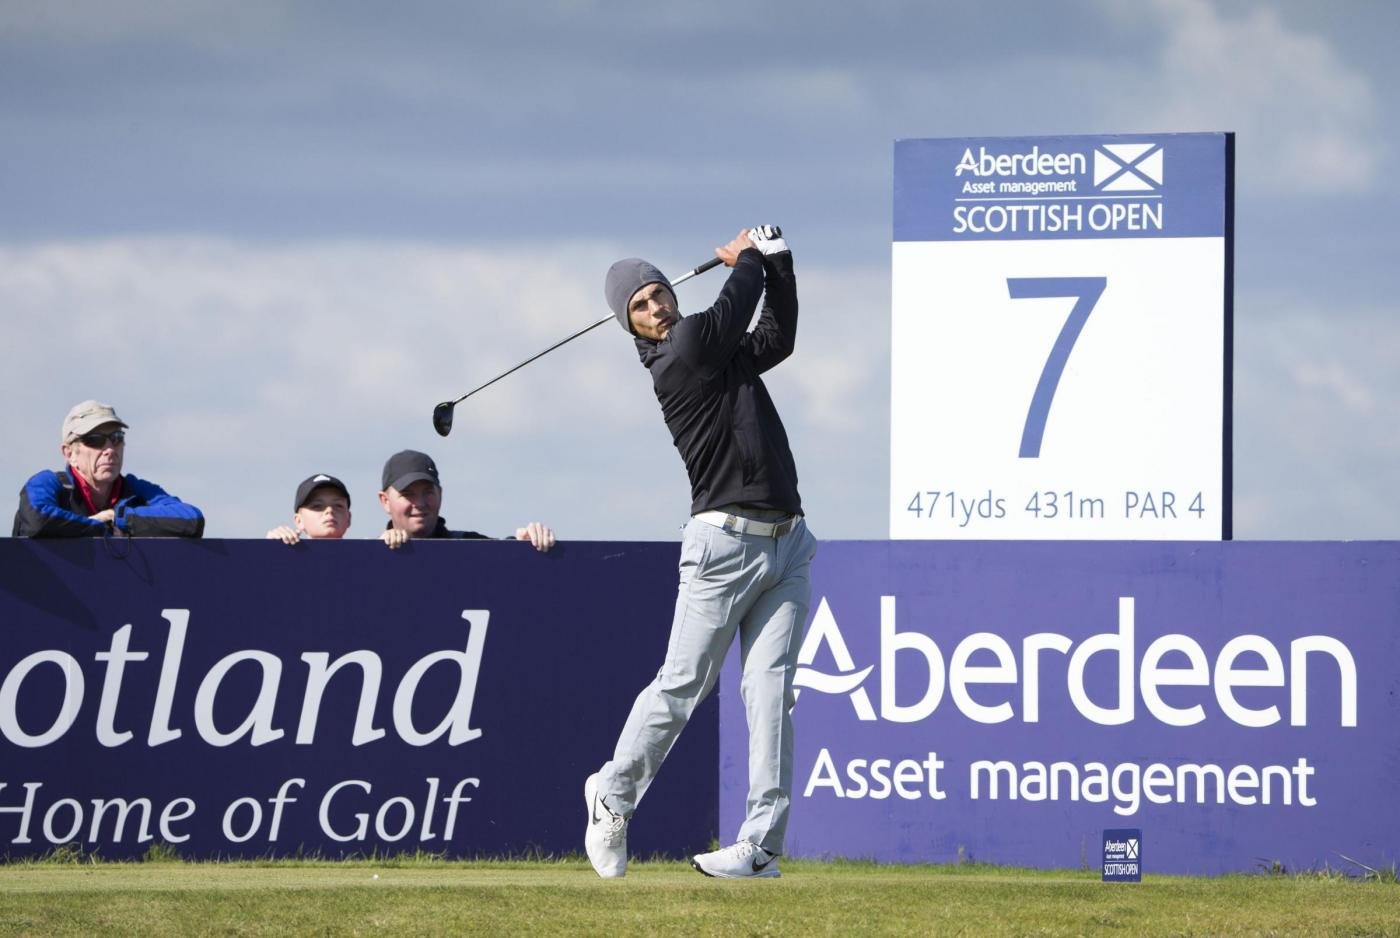 Denmarks Thorbjorn Olesen tees off at the 7th hole during day one of the Scottish Open at Gullane Golf Club, East Lothian. PRESS ASSOCIATION Photo. Picture date: Thursday July 9, 2015. See PA story GOLF Gullane. Photo credit should read: Kenny Smith/PA Wire. RESTRICTIONS: Editorial use only. No commercial use. No false commercial association. No video emulation. No manipulation of images.